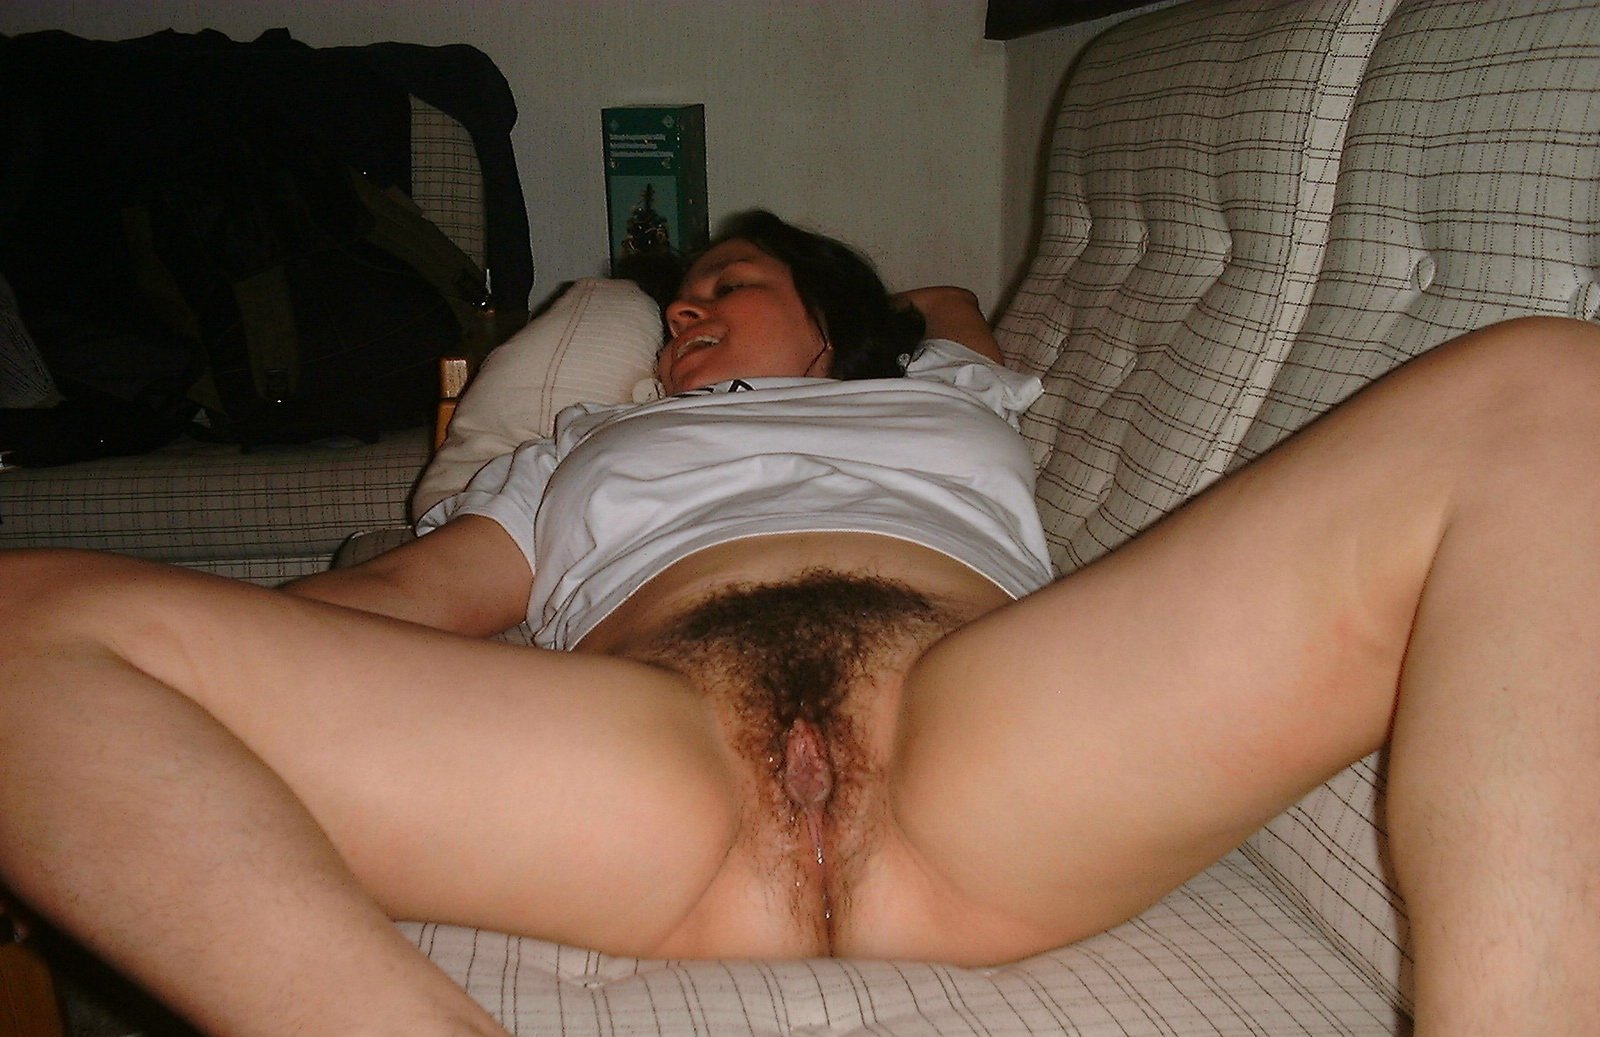 Housewife hookers suck for cash